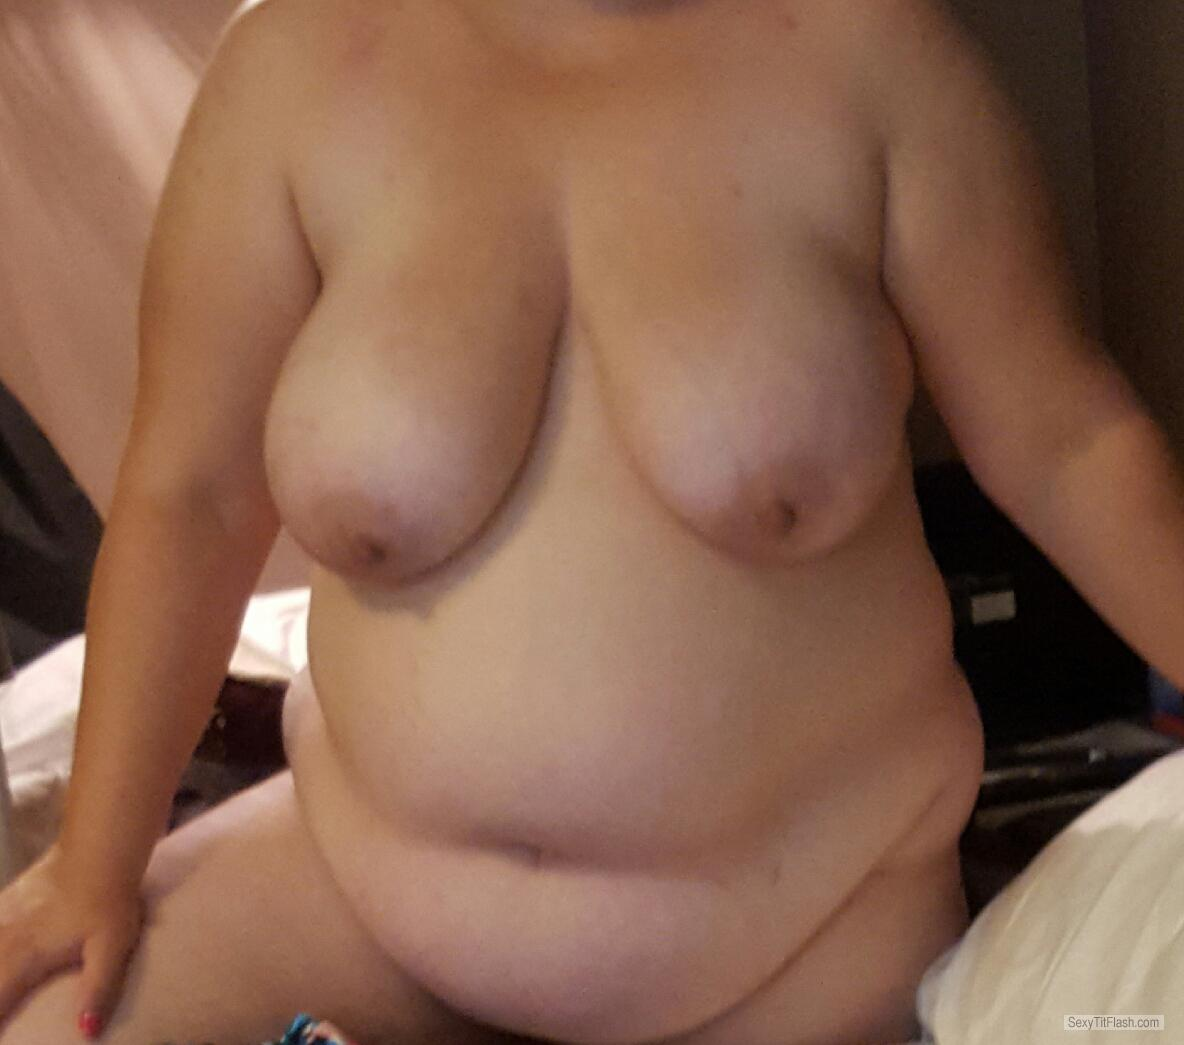 My Very big Tits Just Me